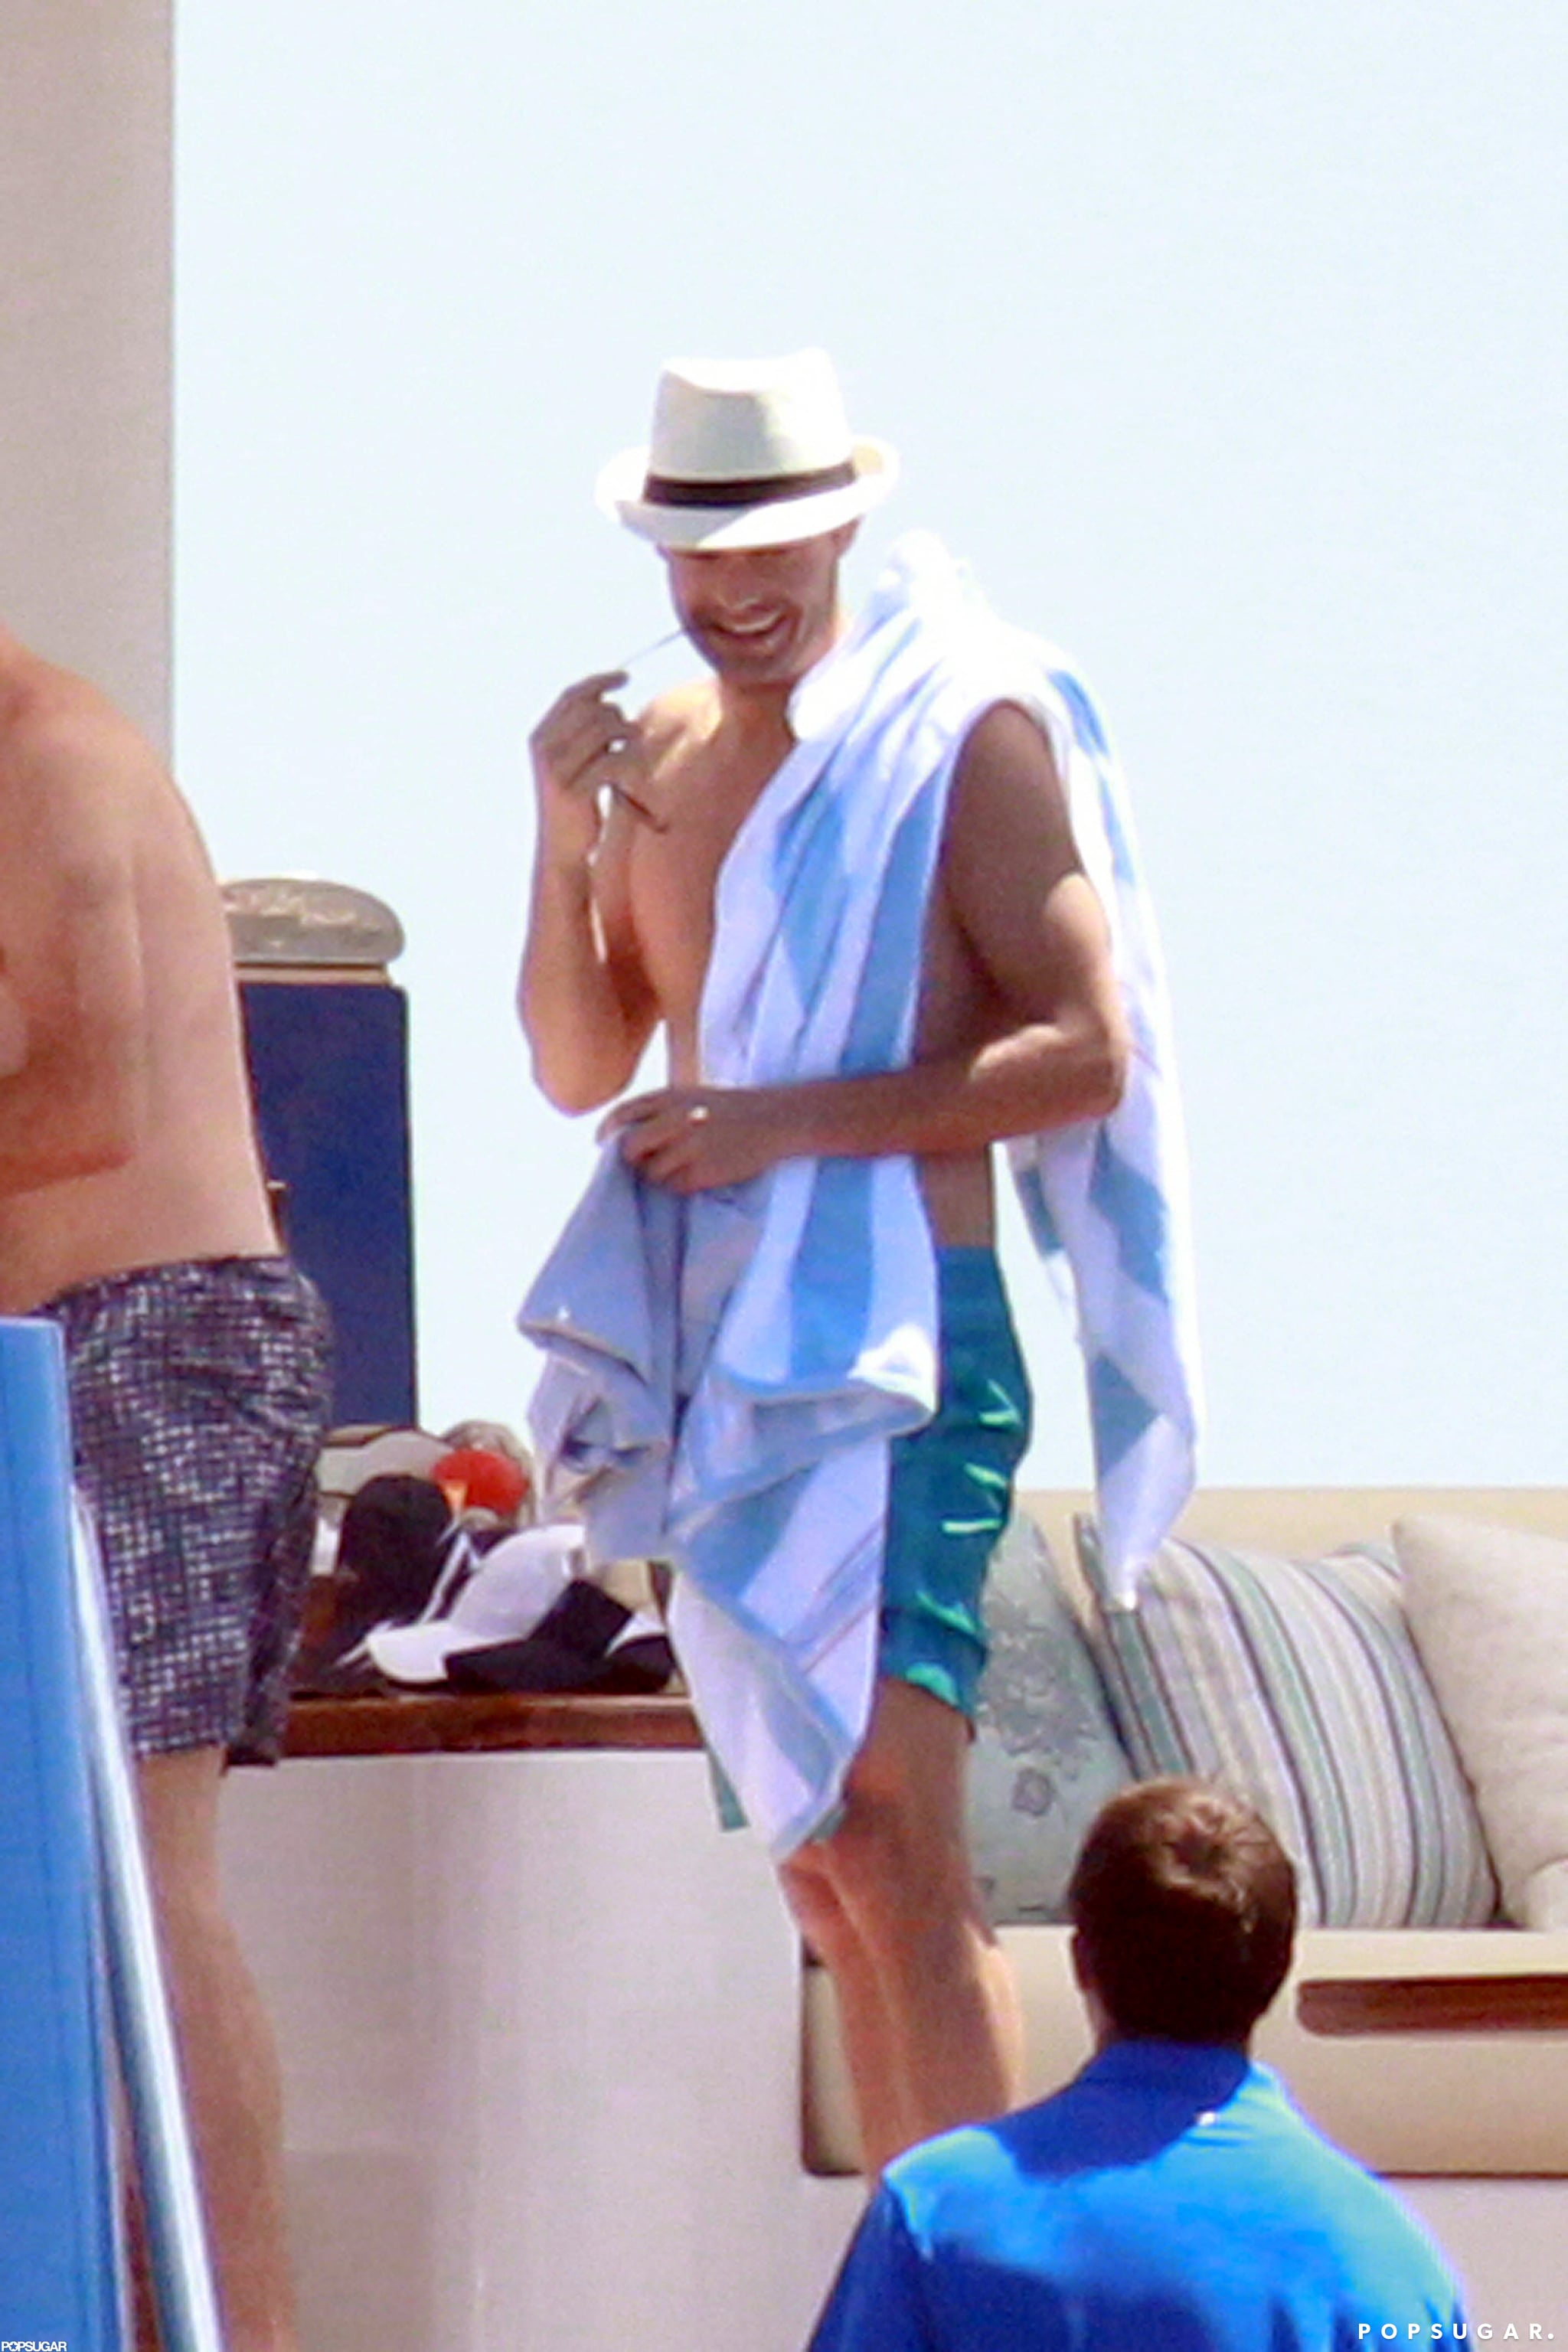 In June 2012, Ryan Seacrest traveled to St.-Tropez with friends.